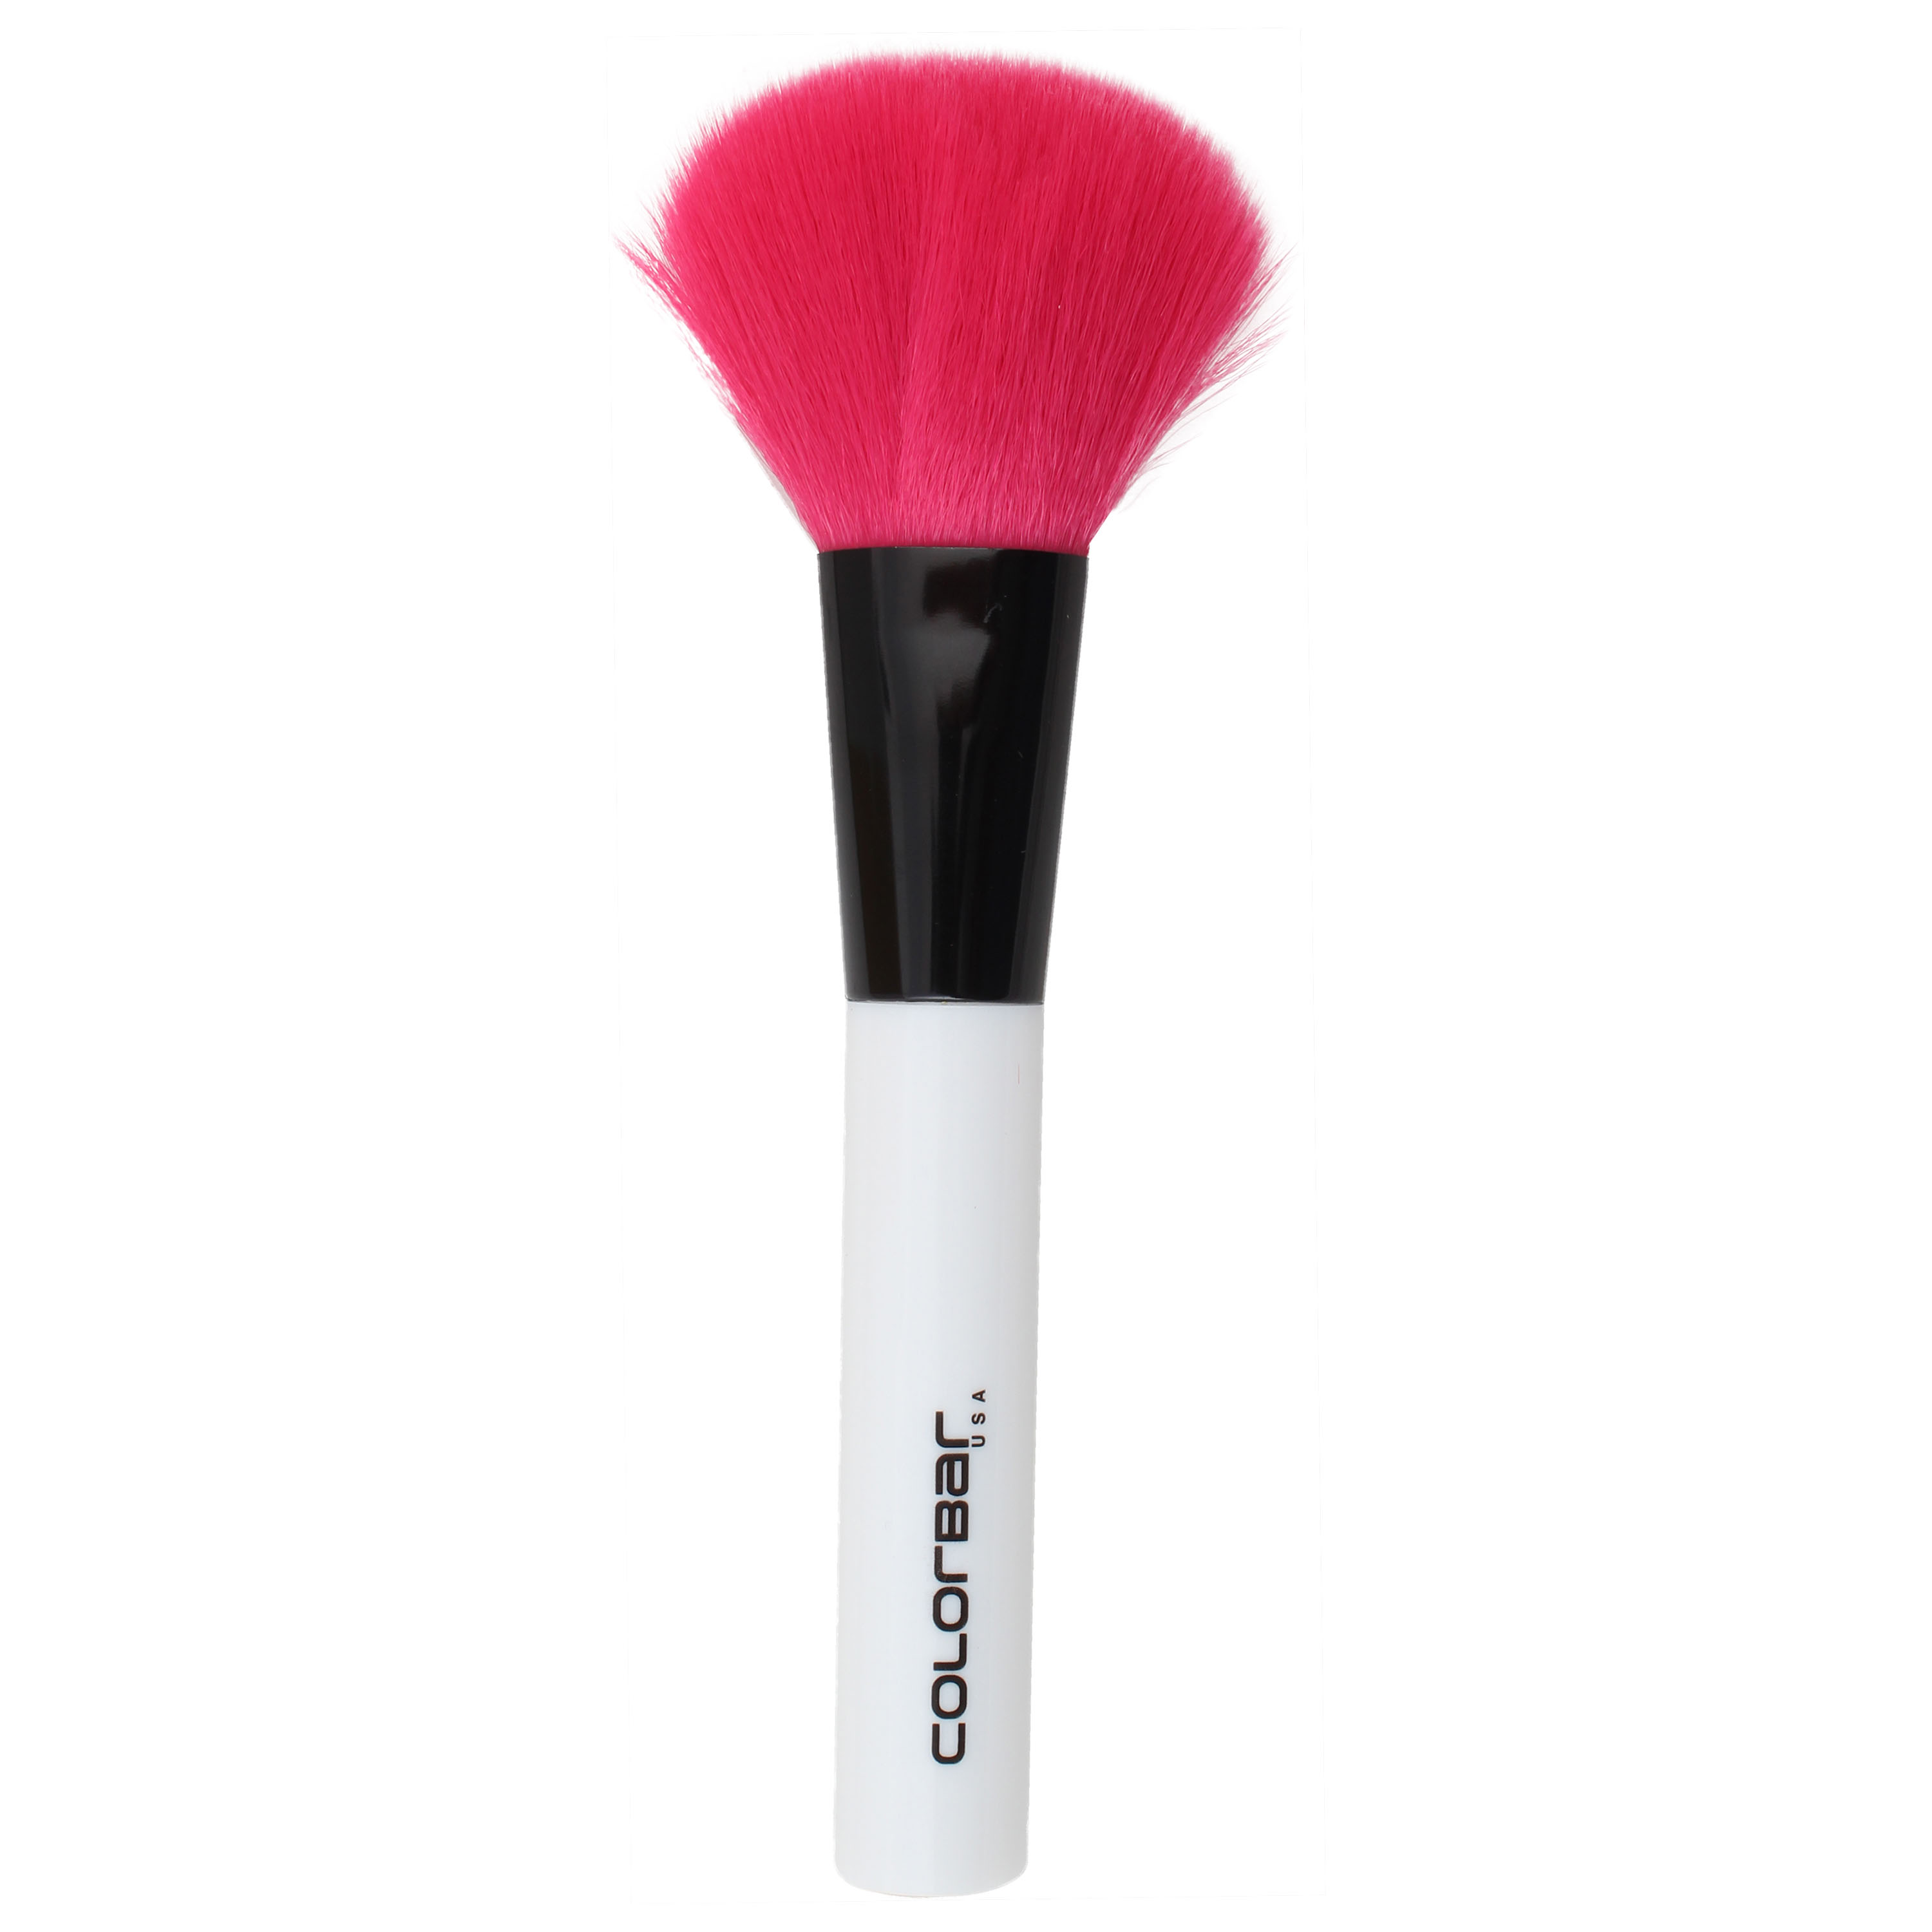 Colorbar USA First Impressions Face Powder Brush